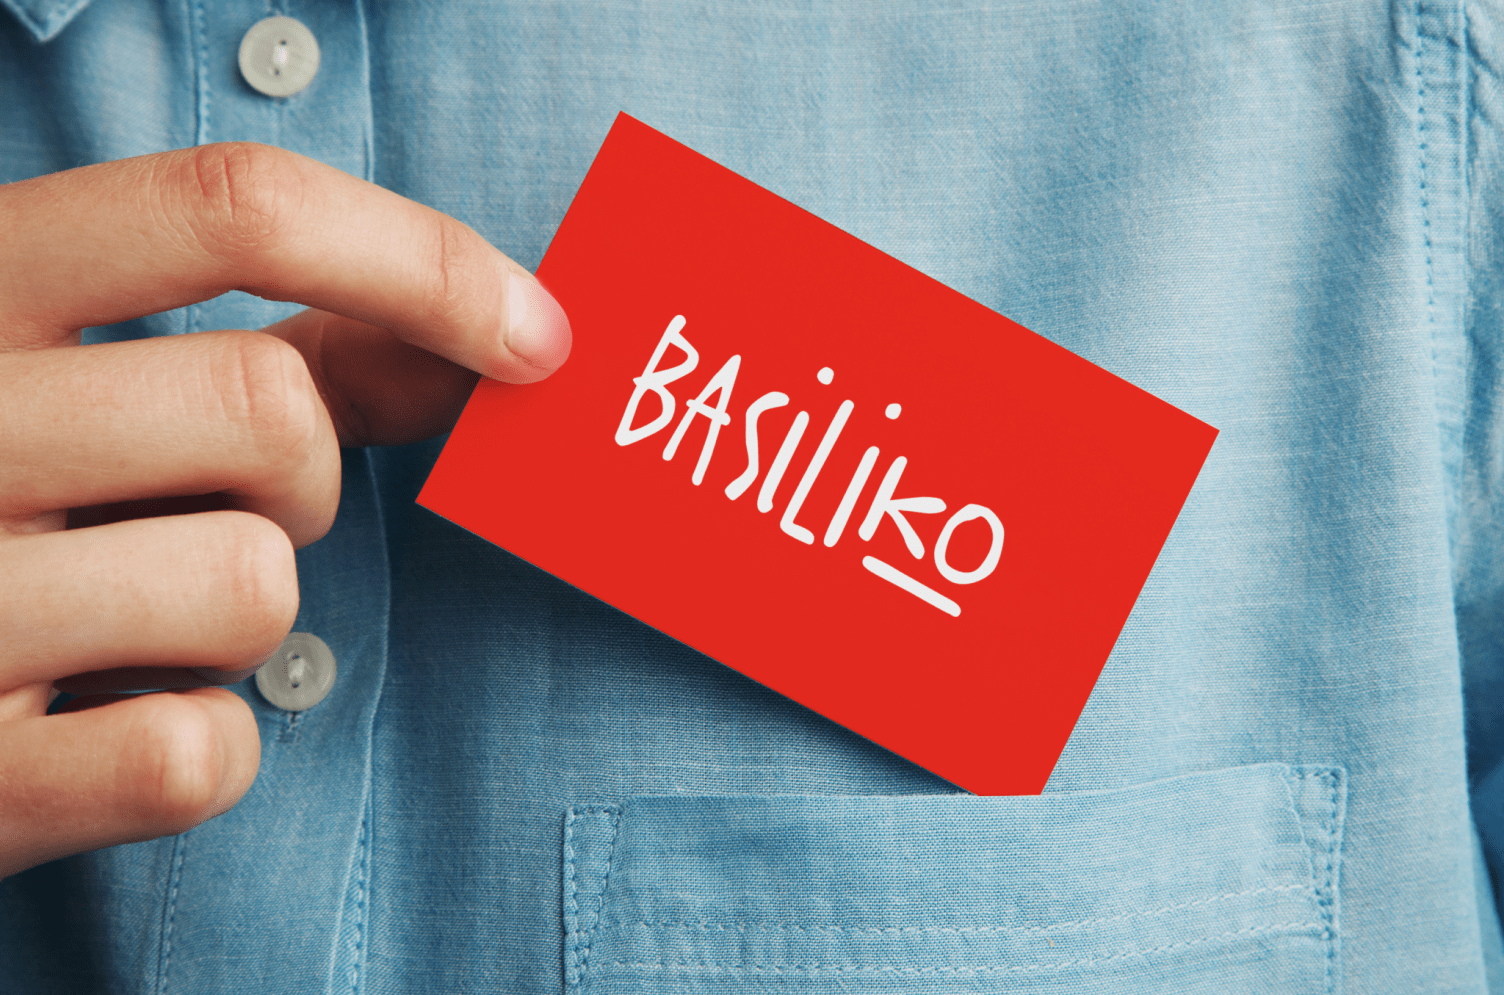 Basiliko Business Card